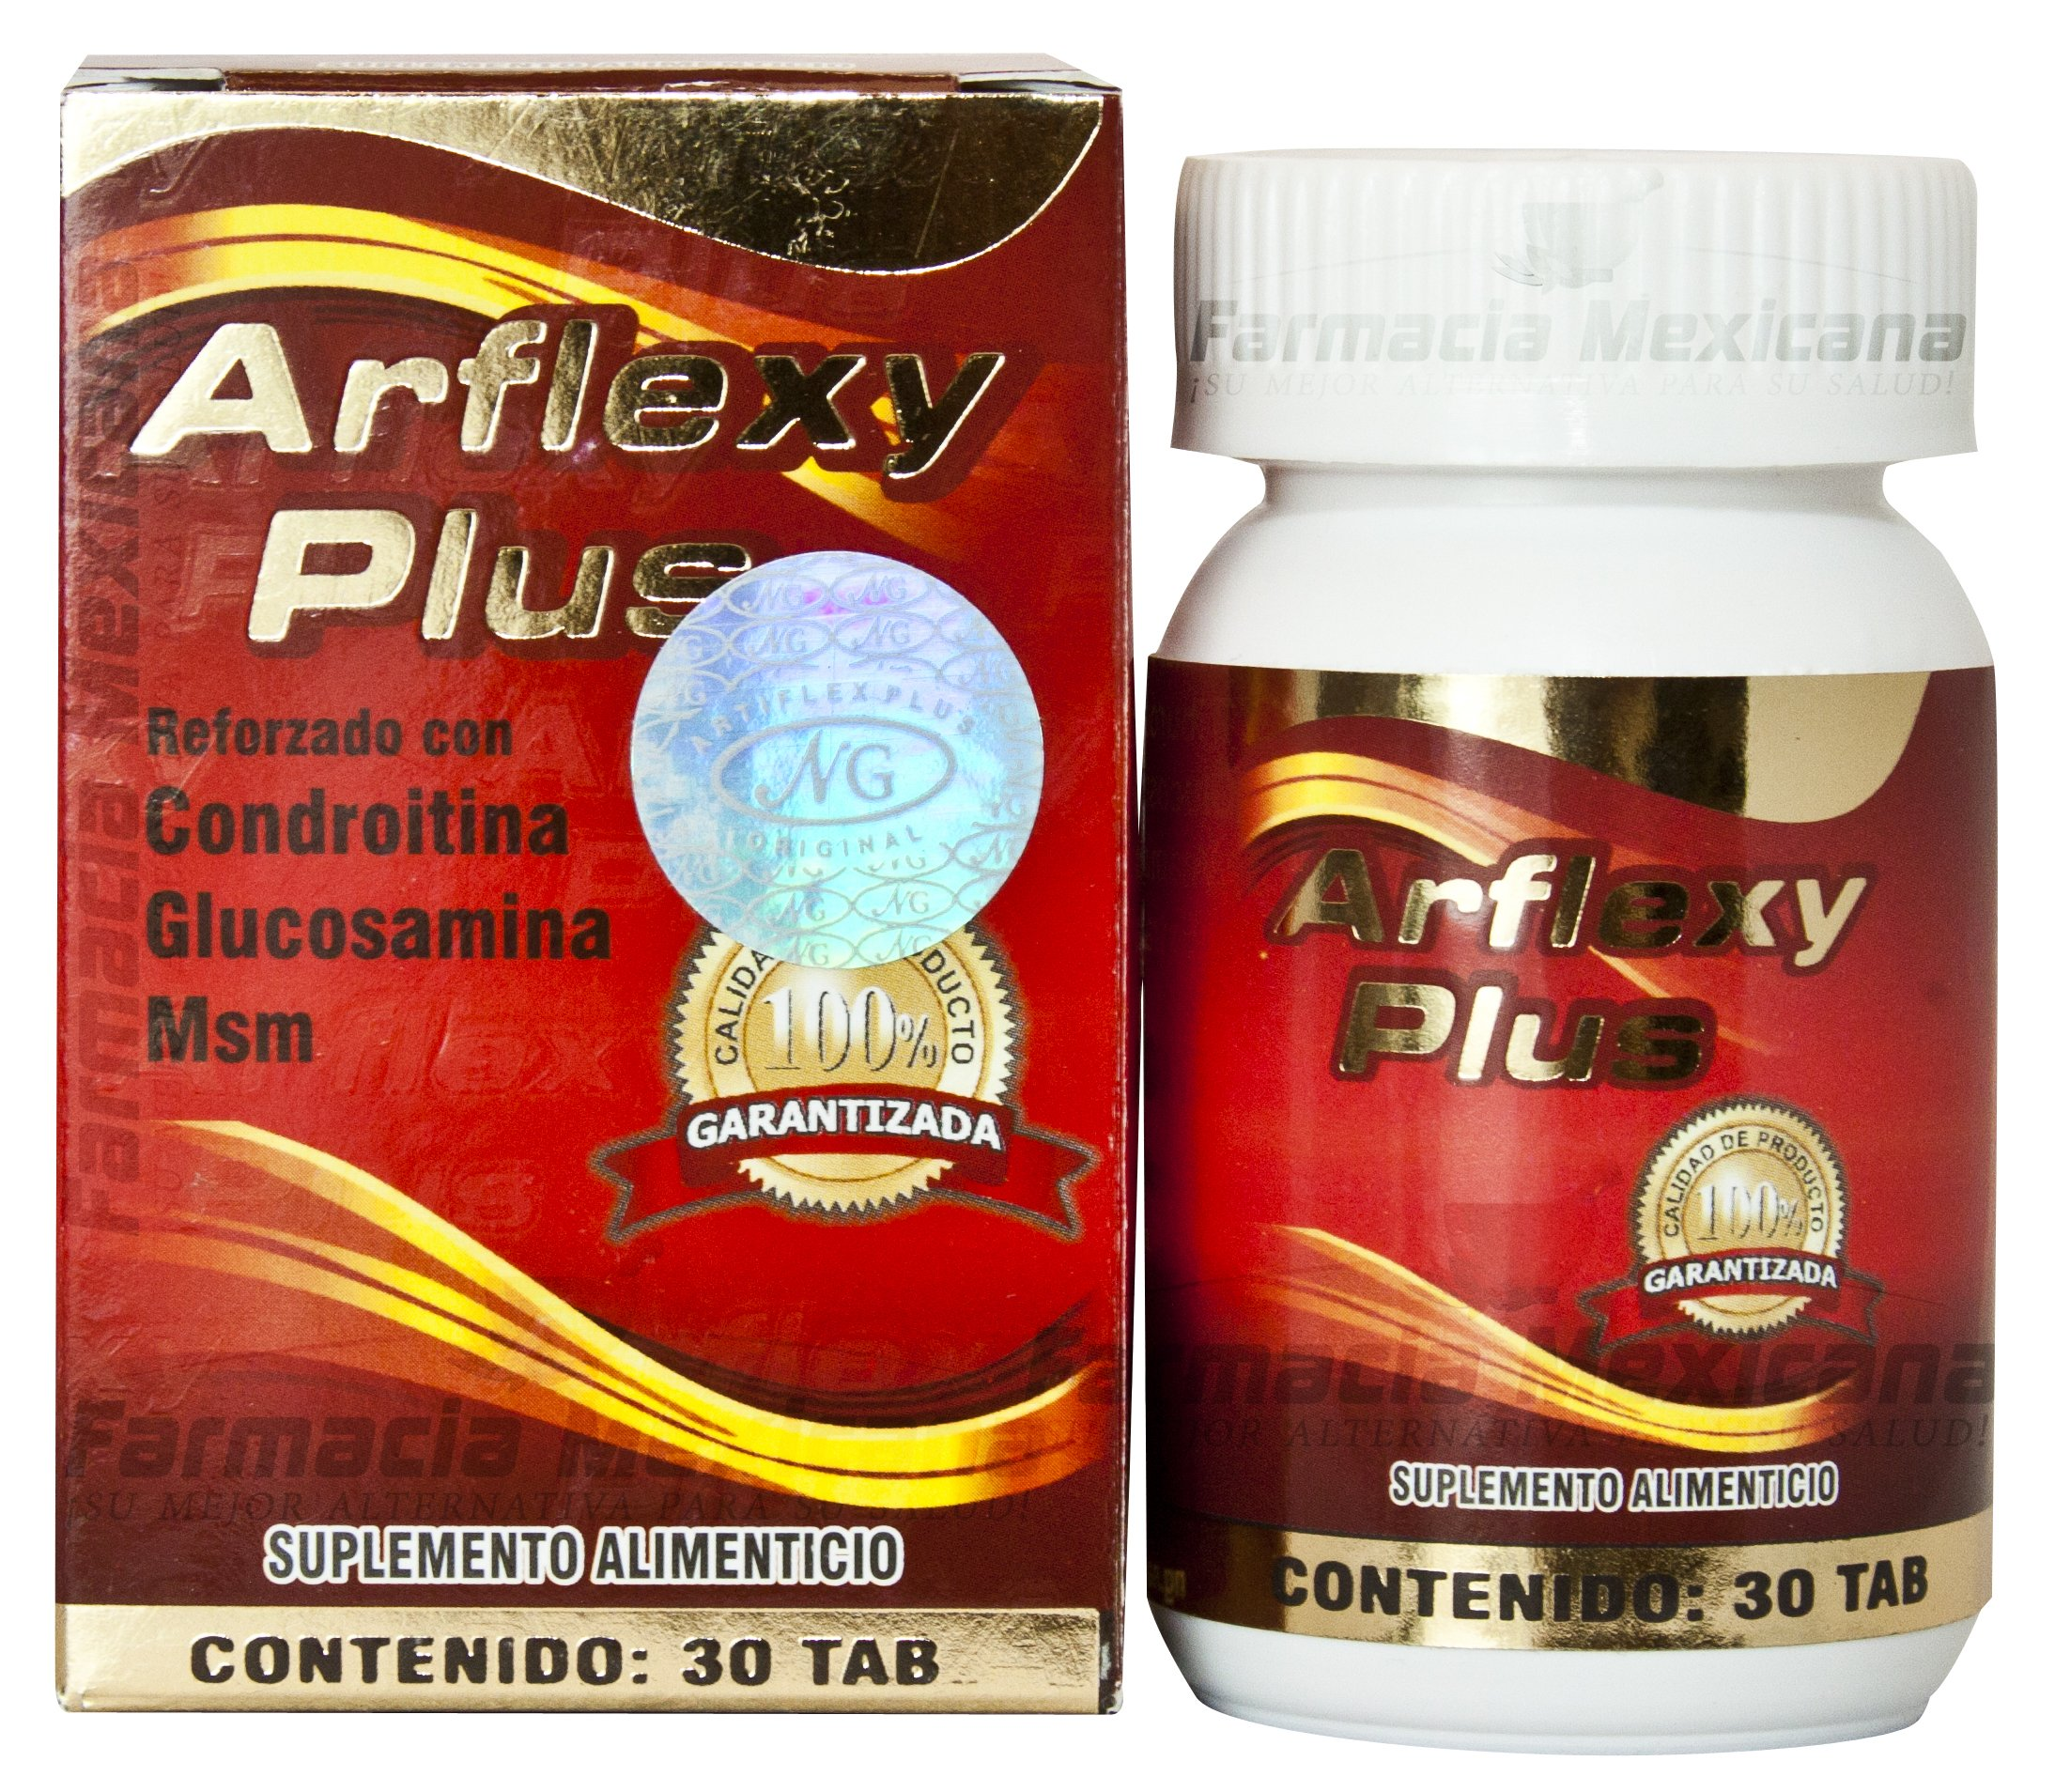 Amazon.com: Arflexy Plus - Calcium, Glucosamine, Curcumin, and Magnesium - 30 Tablets: Health & Personal Care